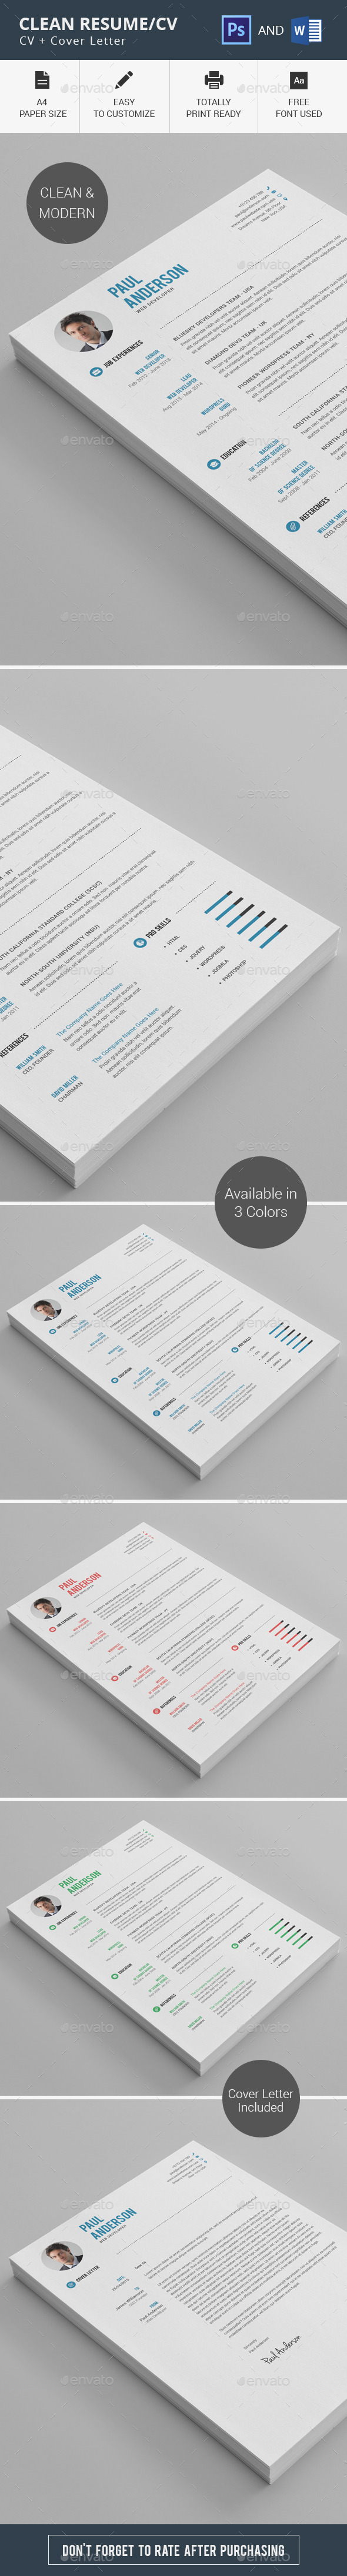 GraphicRiver Clean Resume CV 11274948